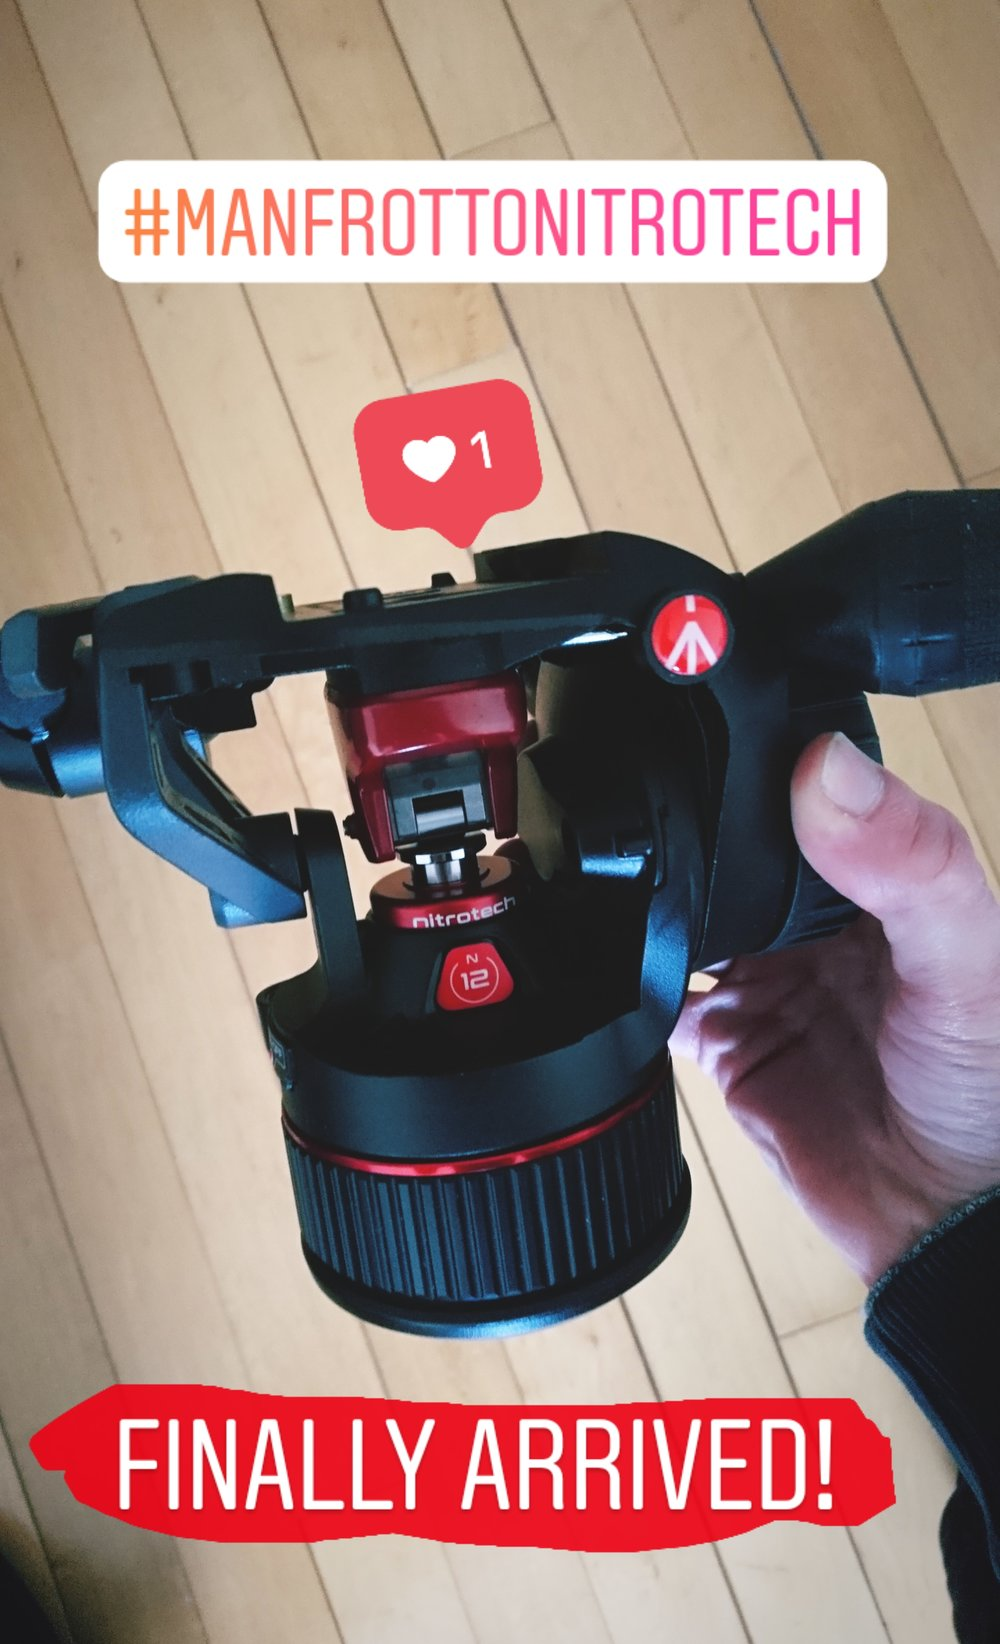 Manfrotto+Nitrotech+N12+-+Instagram+Story.jpeg